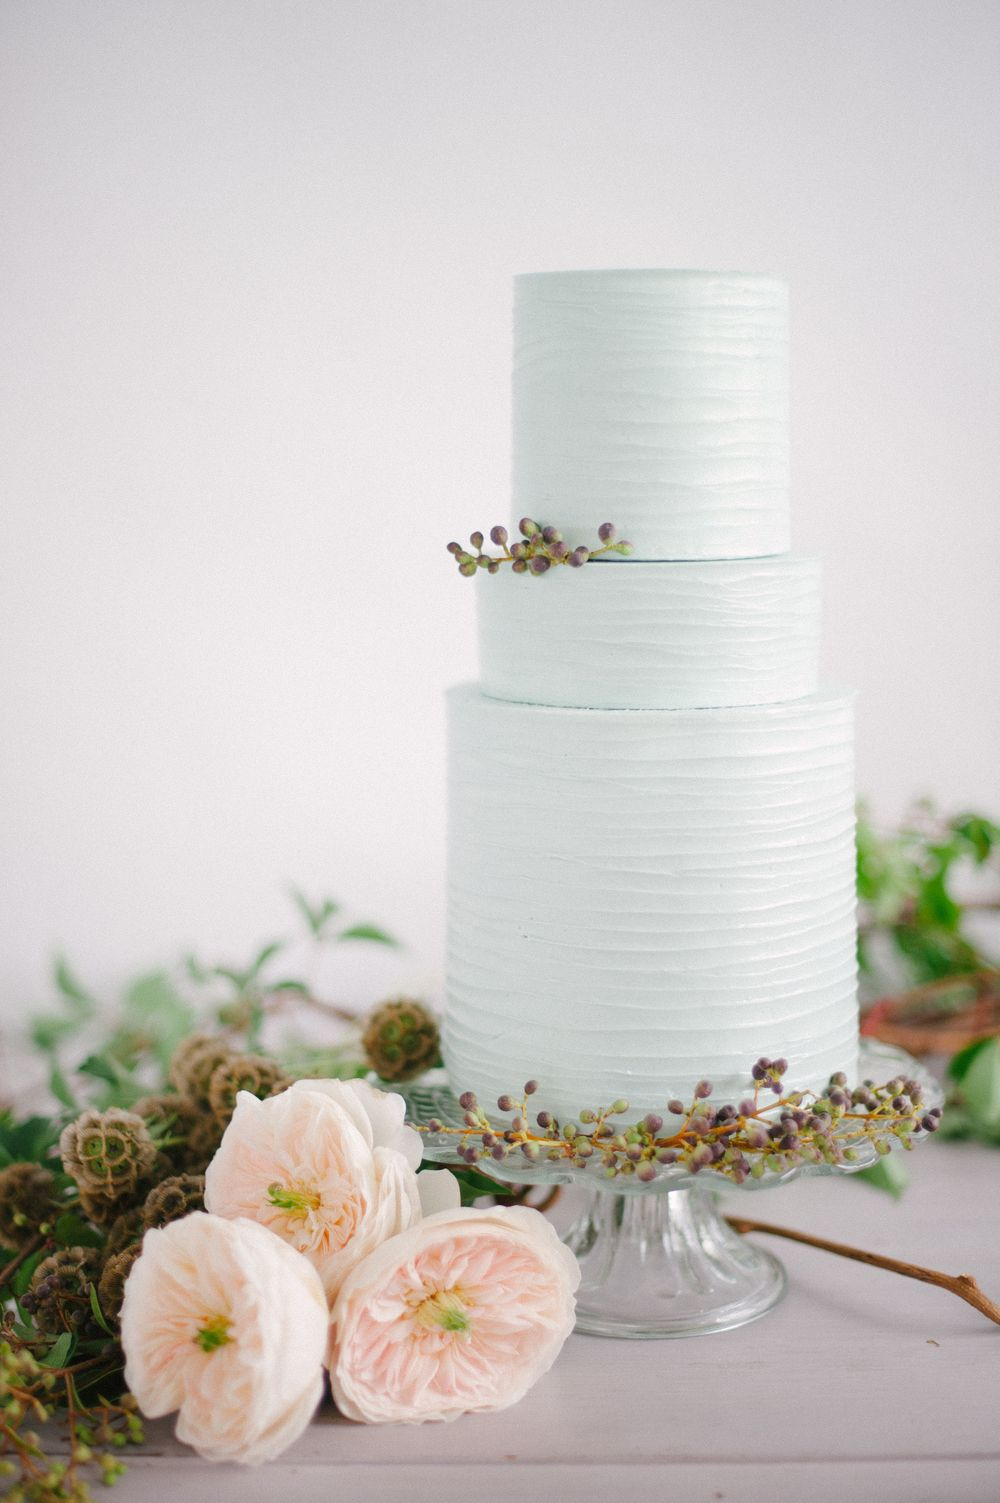 Cake inspiration mine will be this color and texture same cake